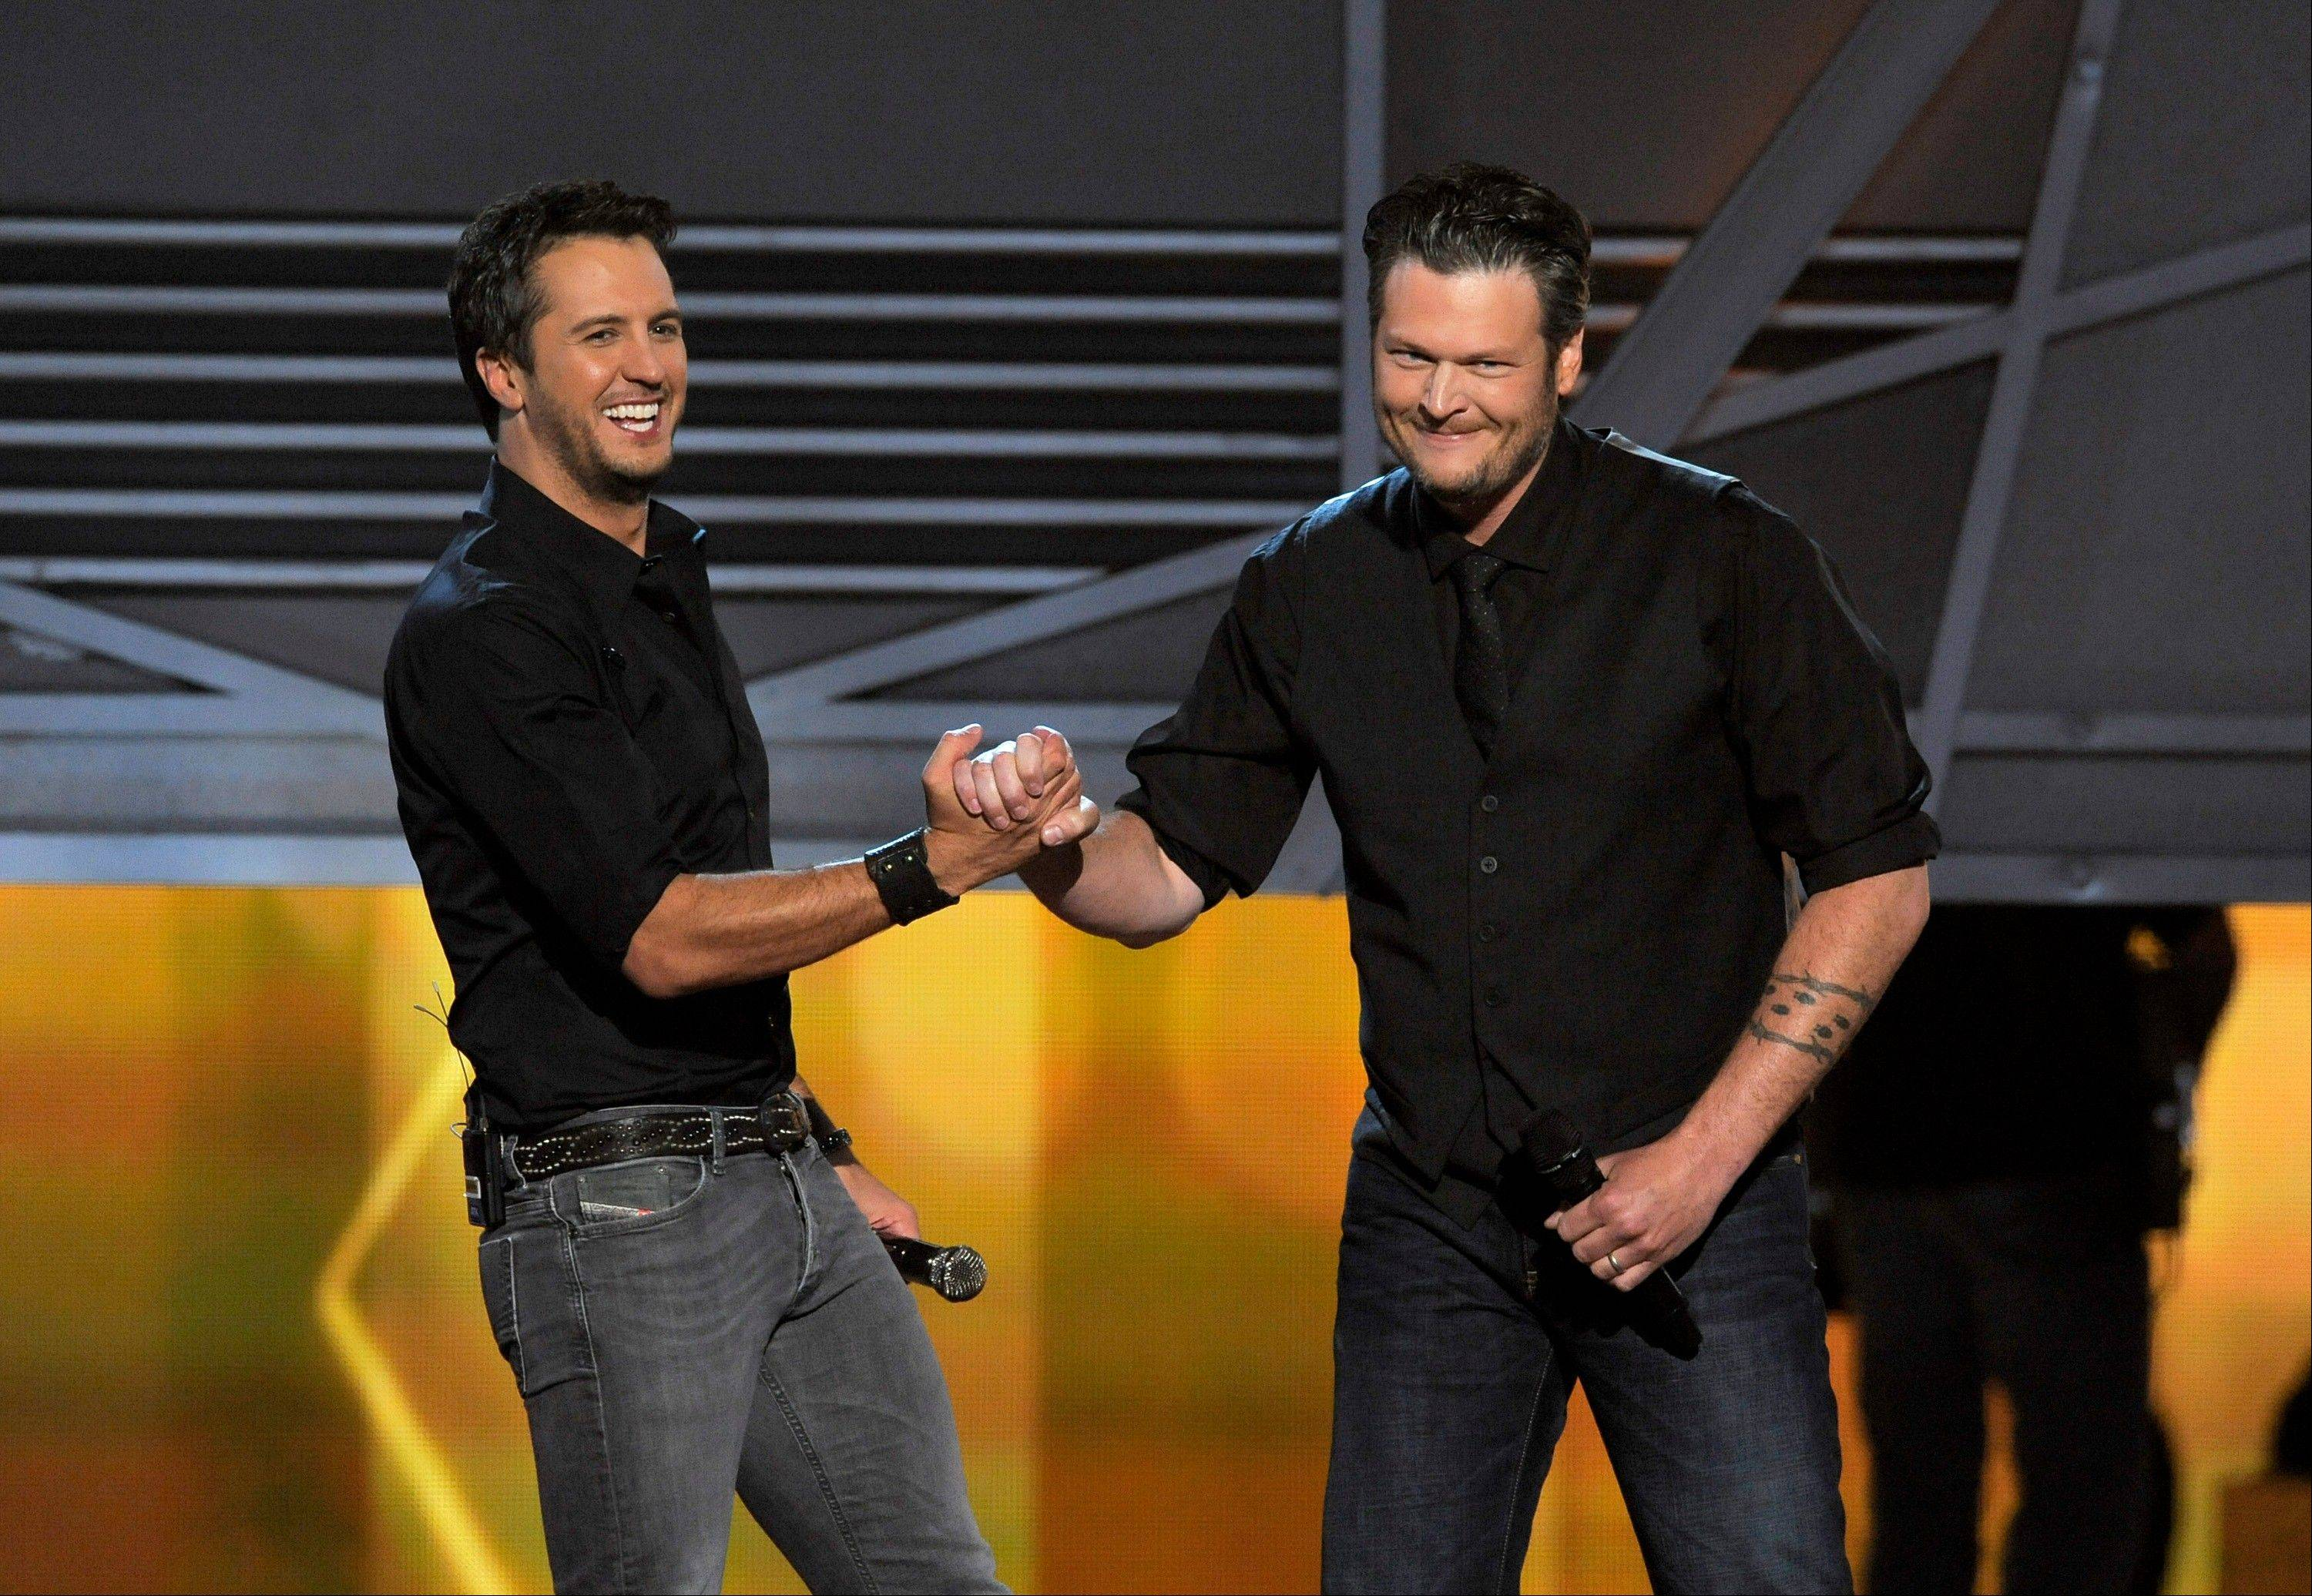 Luke Bryan, left, and Blake Shelton have a little fun while co-hosting the 48th Annual Academy of Country Music Awards Sunday at the MGM Grand Garden Arena in Las Vegas. Bryan was named entertainer of the year.